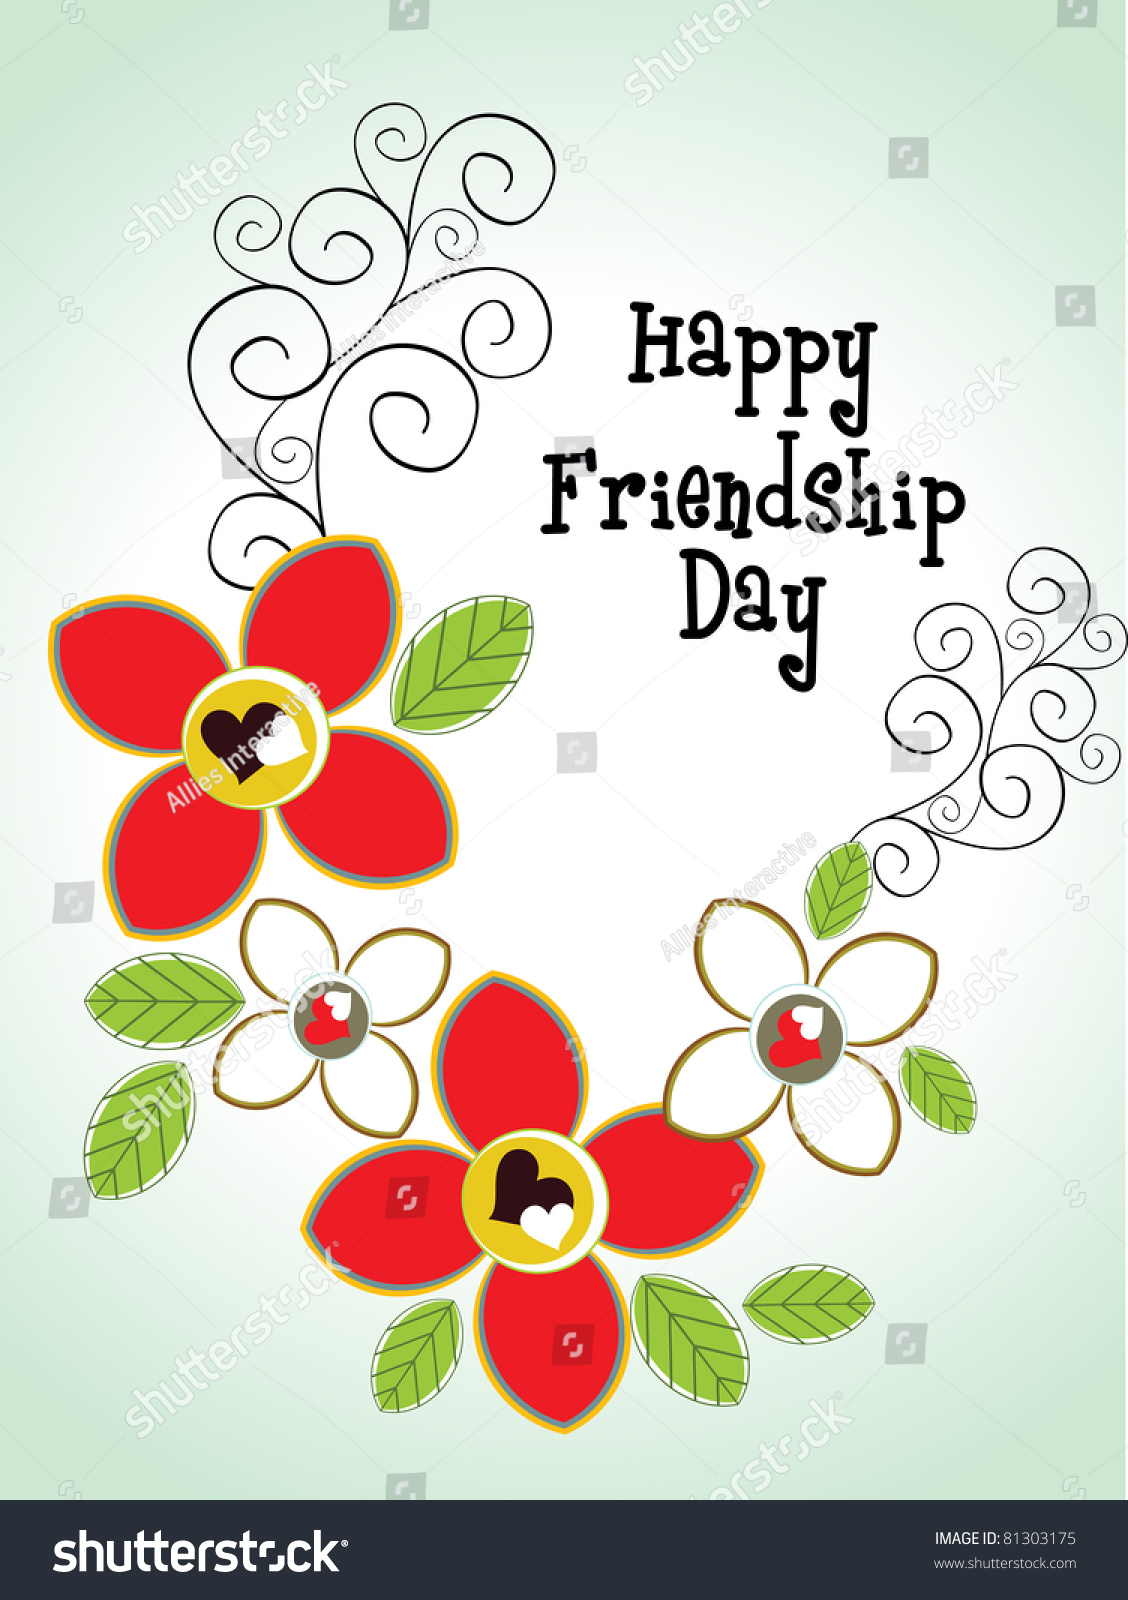 Friendship day greeting card stock vector royalty free 81303175 friendship day greeting card m4hsunfo